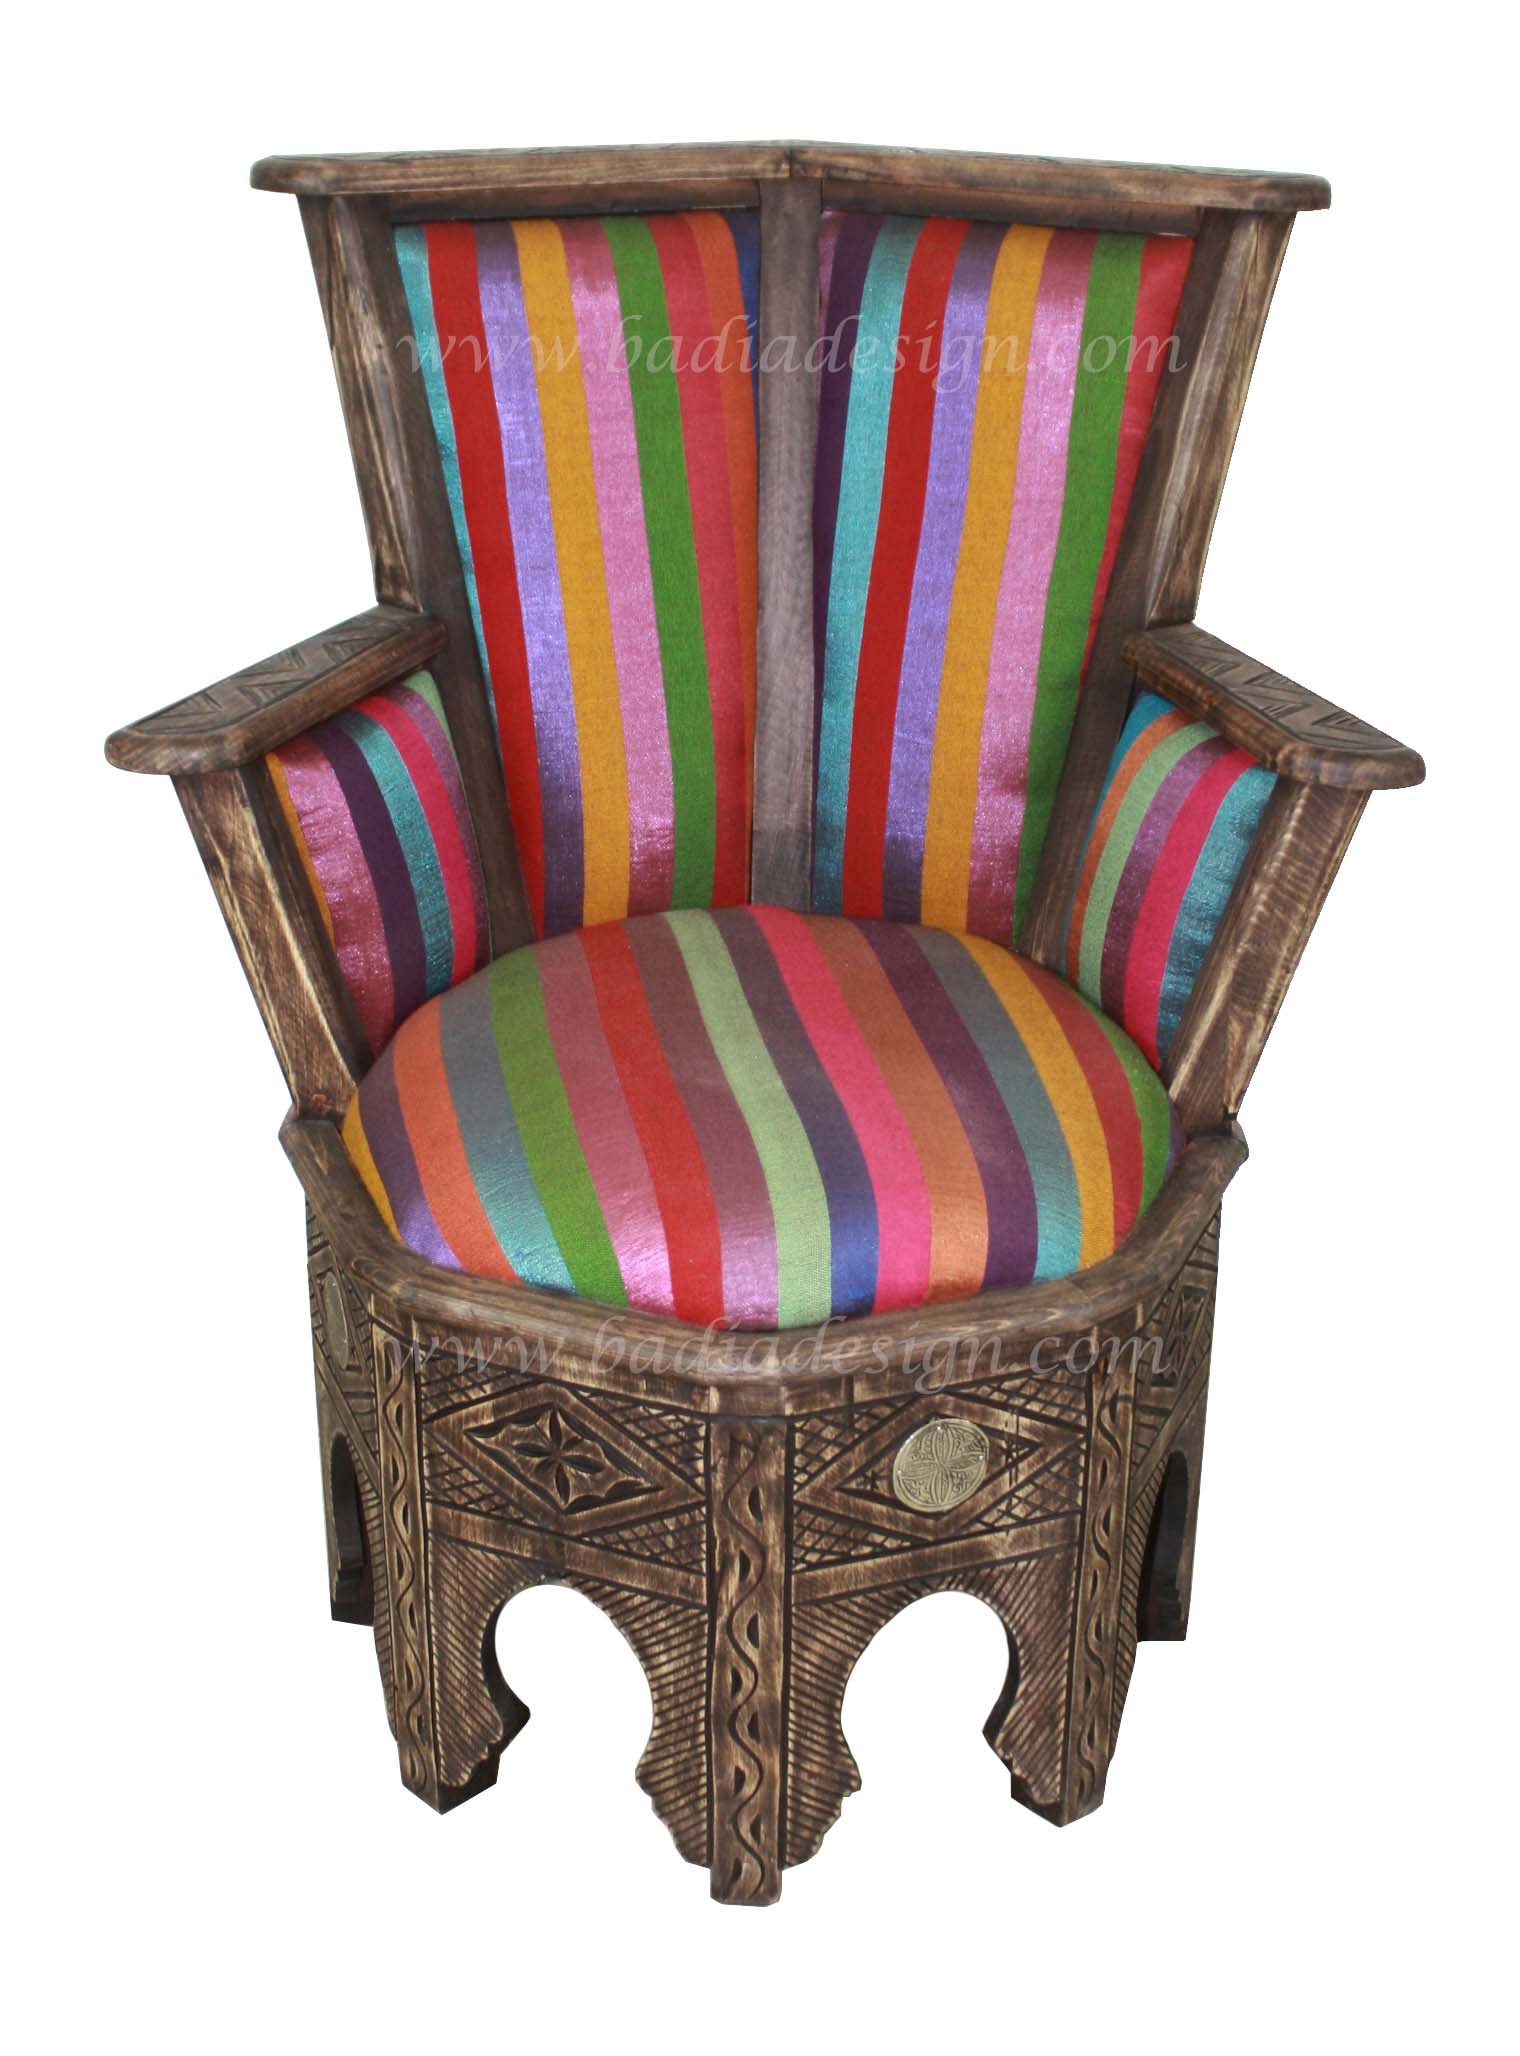 moroccan-carved-wood-chair-cw-ch014-1.jpg